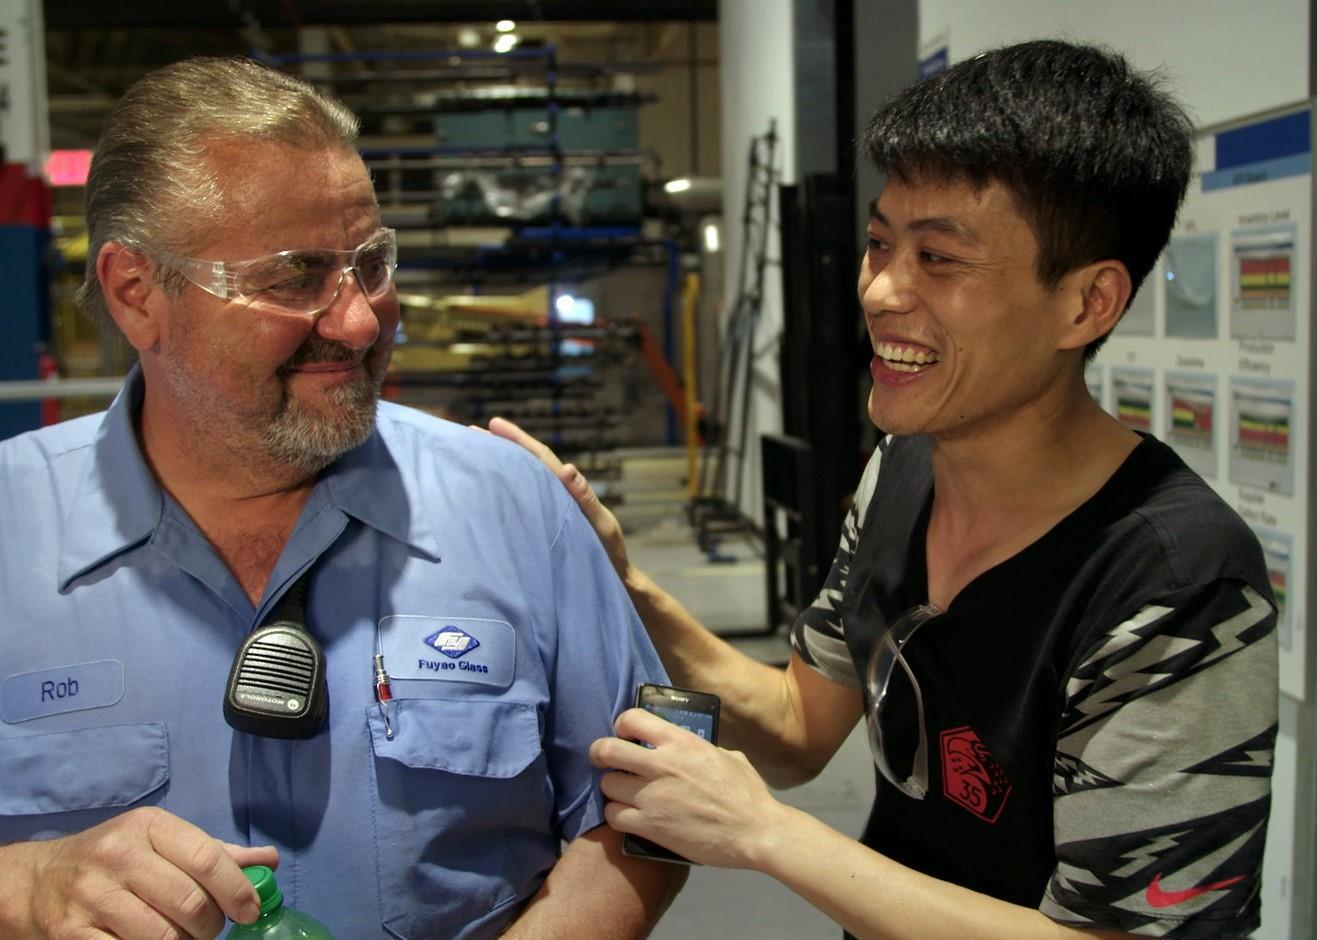 An American worker and a Chinese worker in Dayton, Ohio in the documentary American Factory.